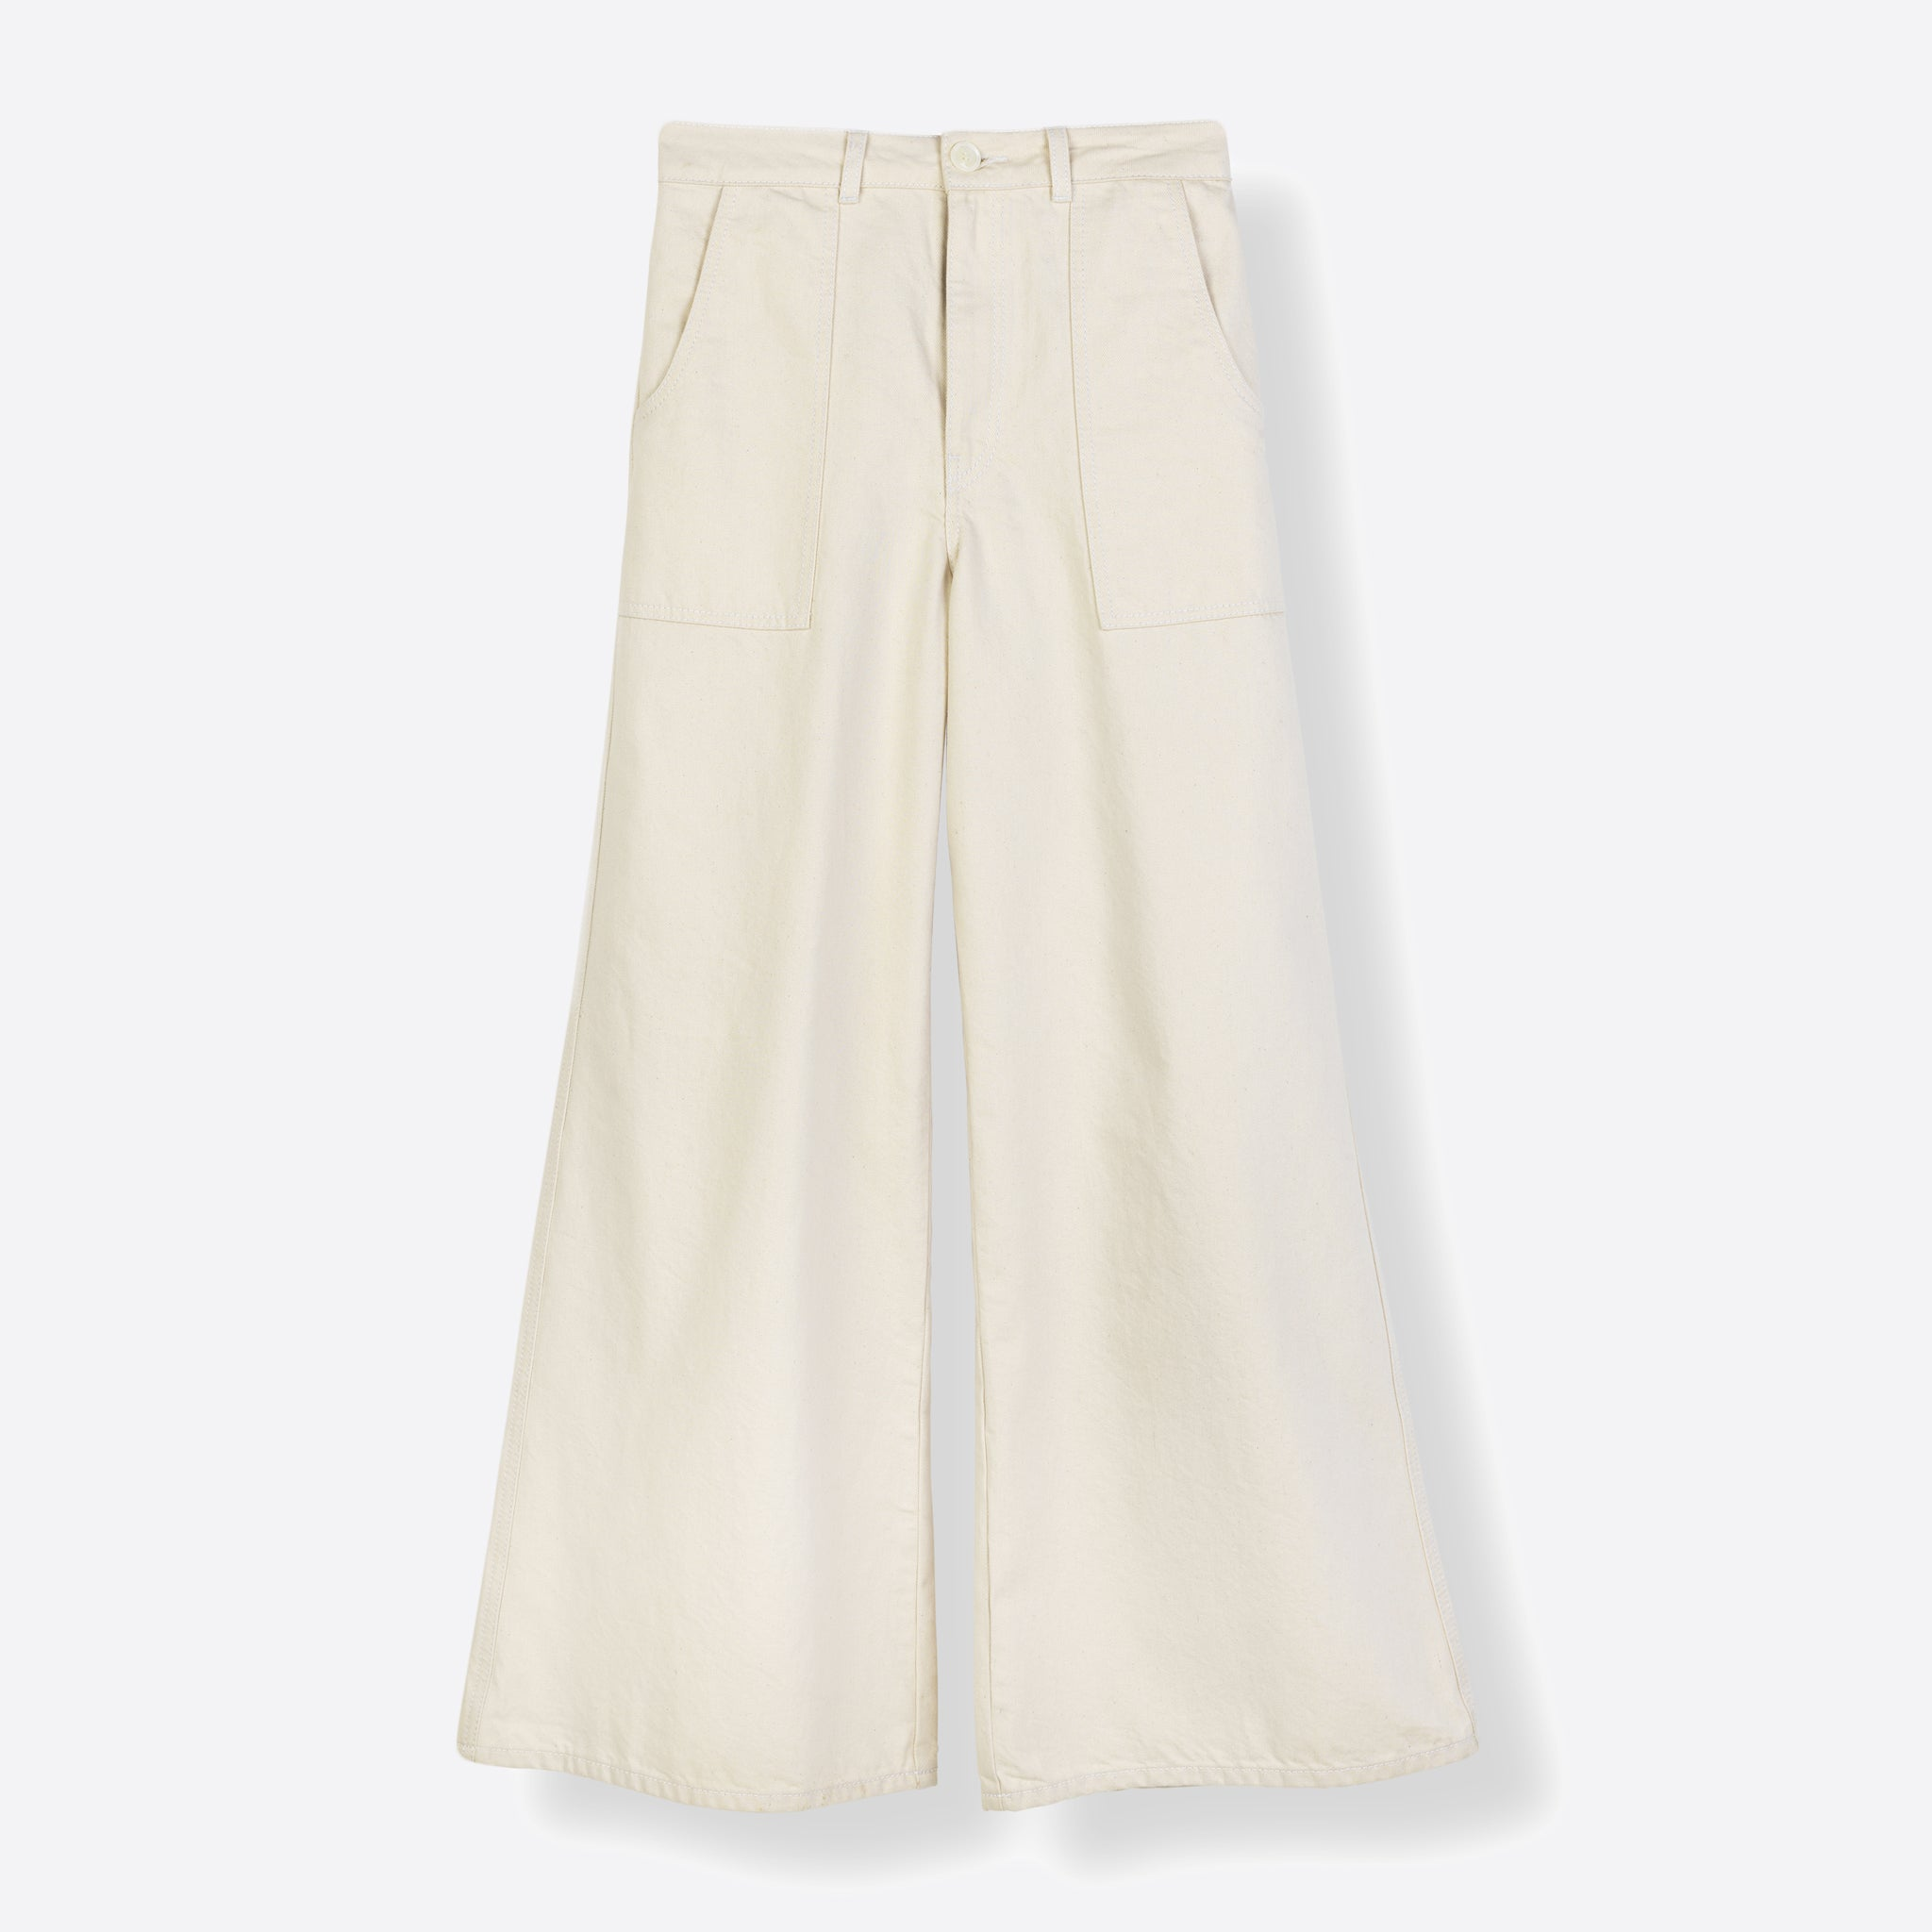 Ganni Bluebell Pants in Vanilla Ice